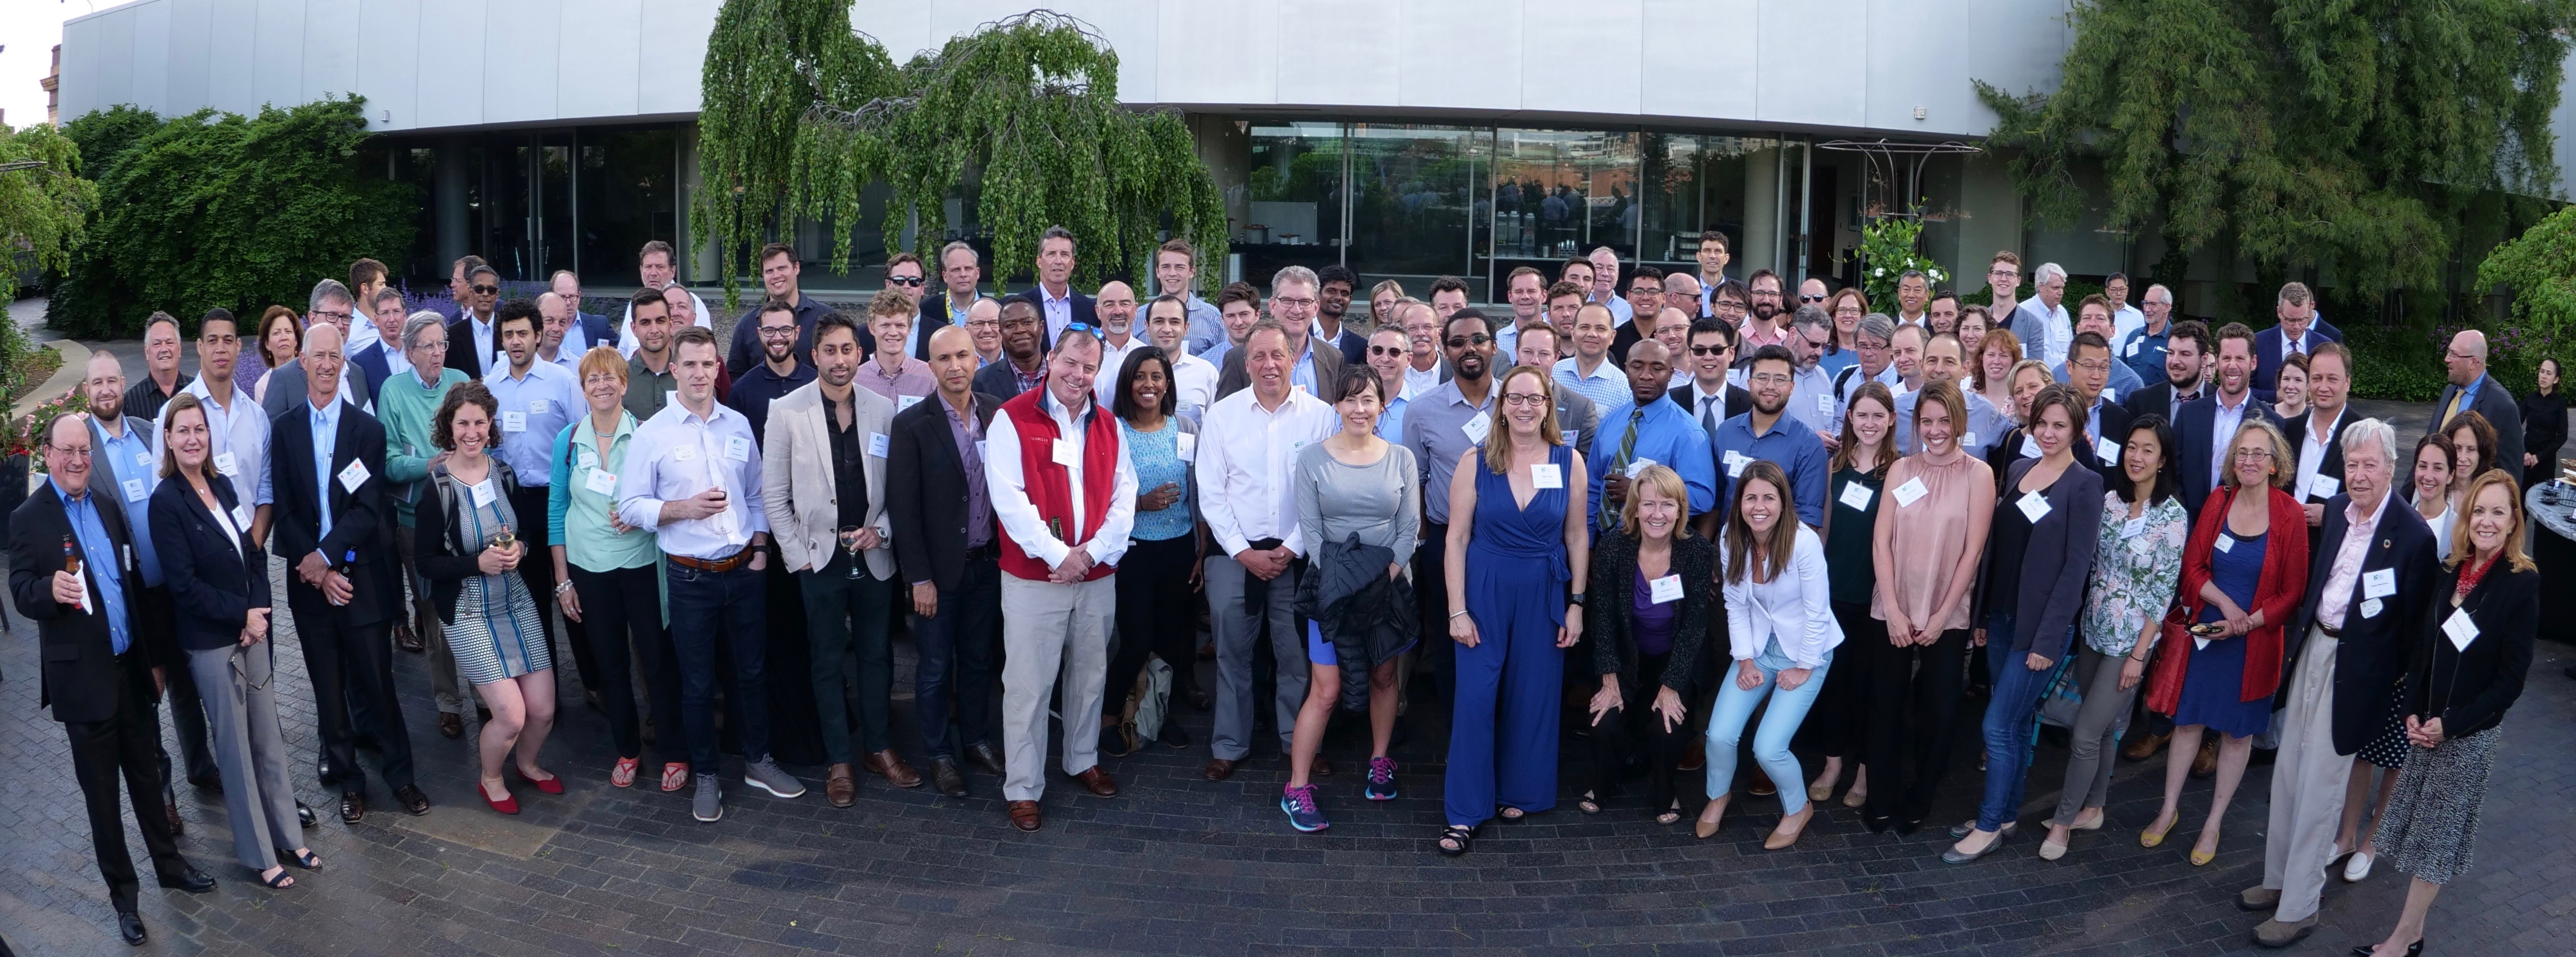 Cleantech Open Northeast Welcomes 35 Cleantech Startups to Participate in the 2019 Cleantech Business Accelerator